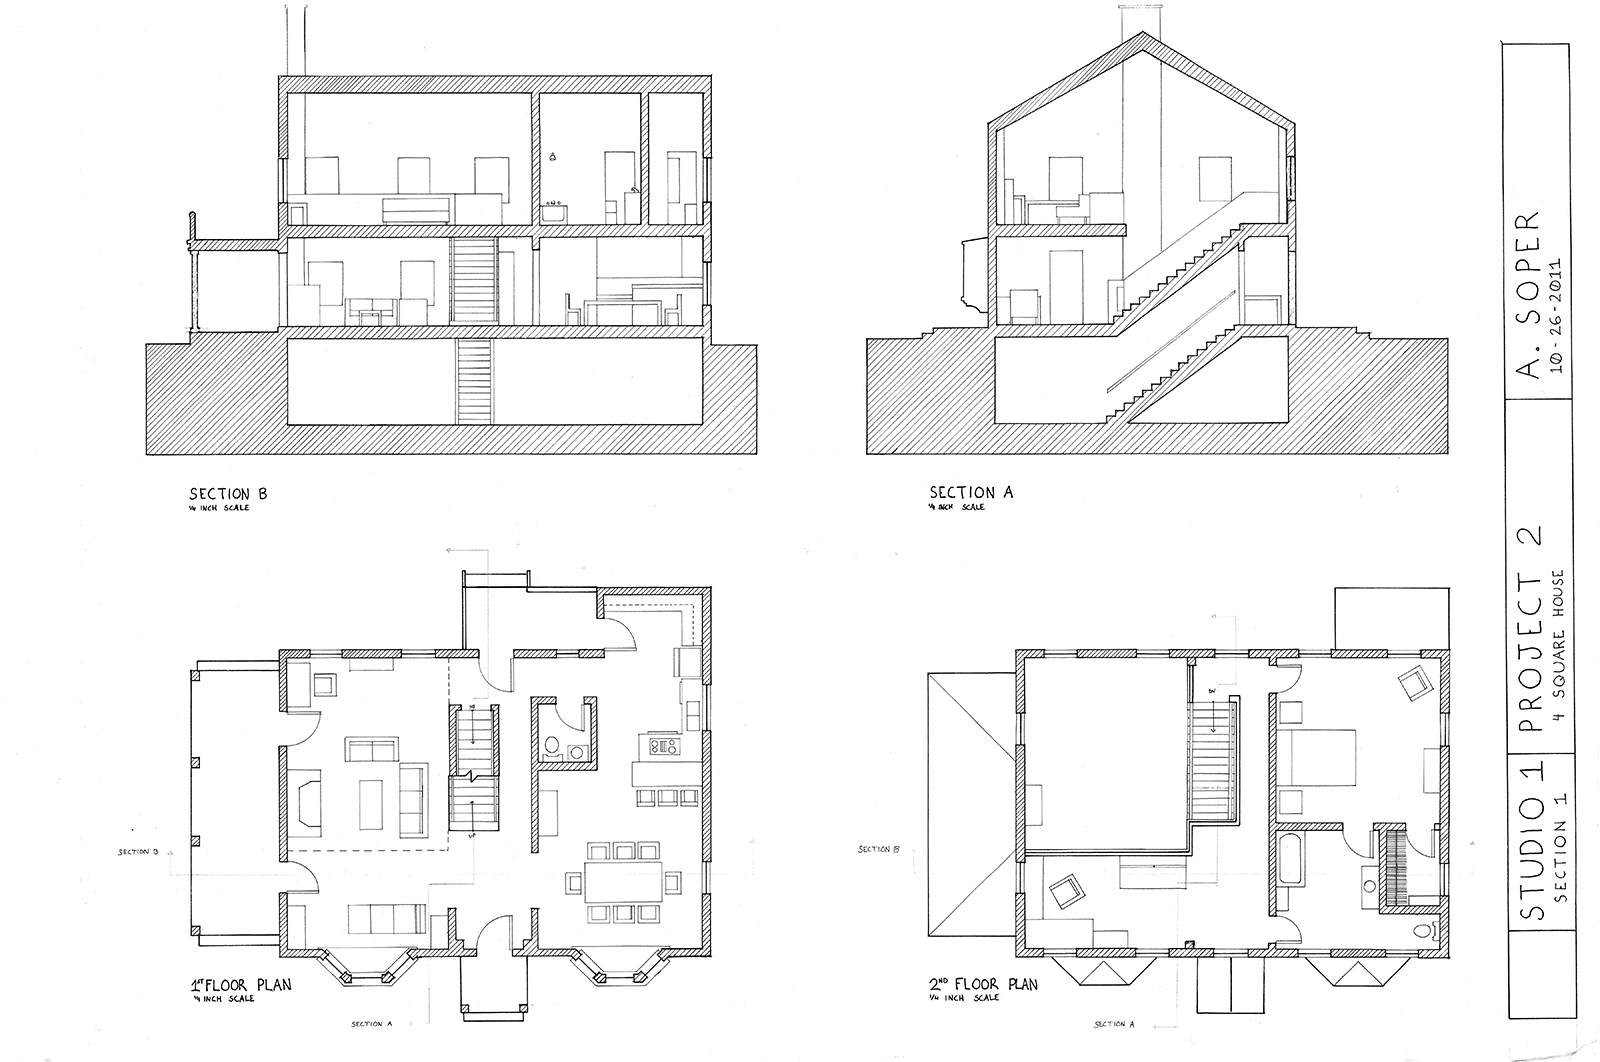 St1_P2_FloorPlans&Sections